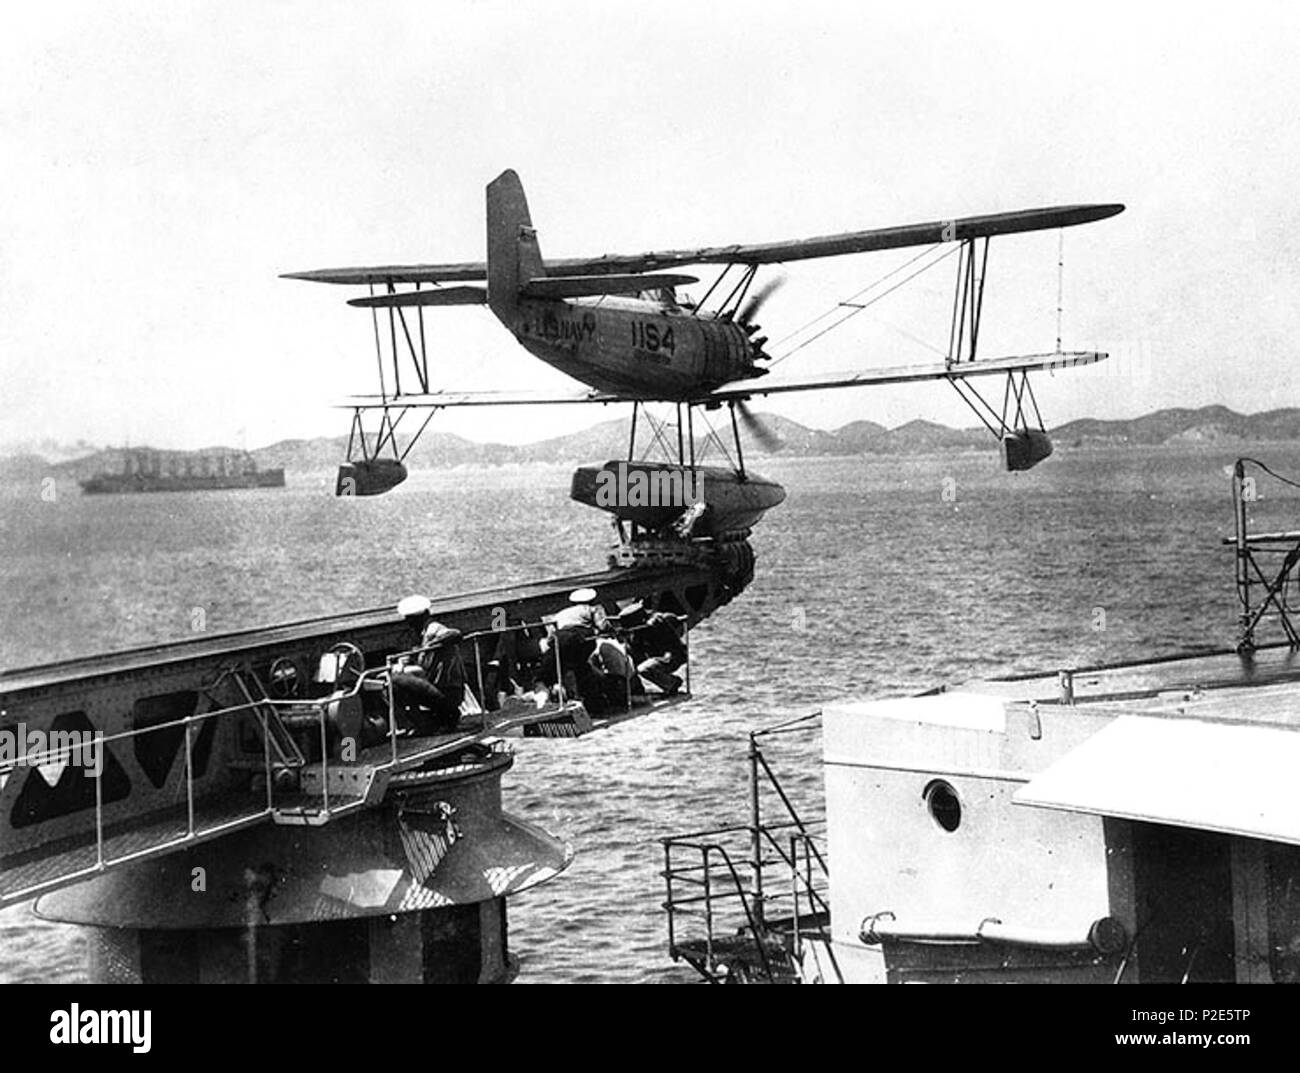 . A U.S. Navy Vought O2U-3 or O2U-4 Corsair floatplane of Scouting Squadron 11 is catapulted from the heavy cruiser USS Houston (CA-30), in Far Eastern waters, circa 1931-1932. The collier/seaplane tender USS Jason (AV-2) is in the left distance. circa 1932. USN 37 O2U Corsair is catapulted from USS Houston (CA-30) c1932 - Stock Image